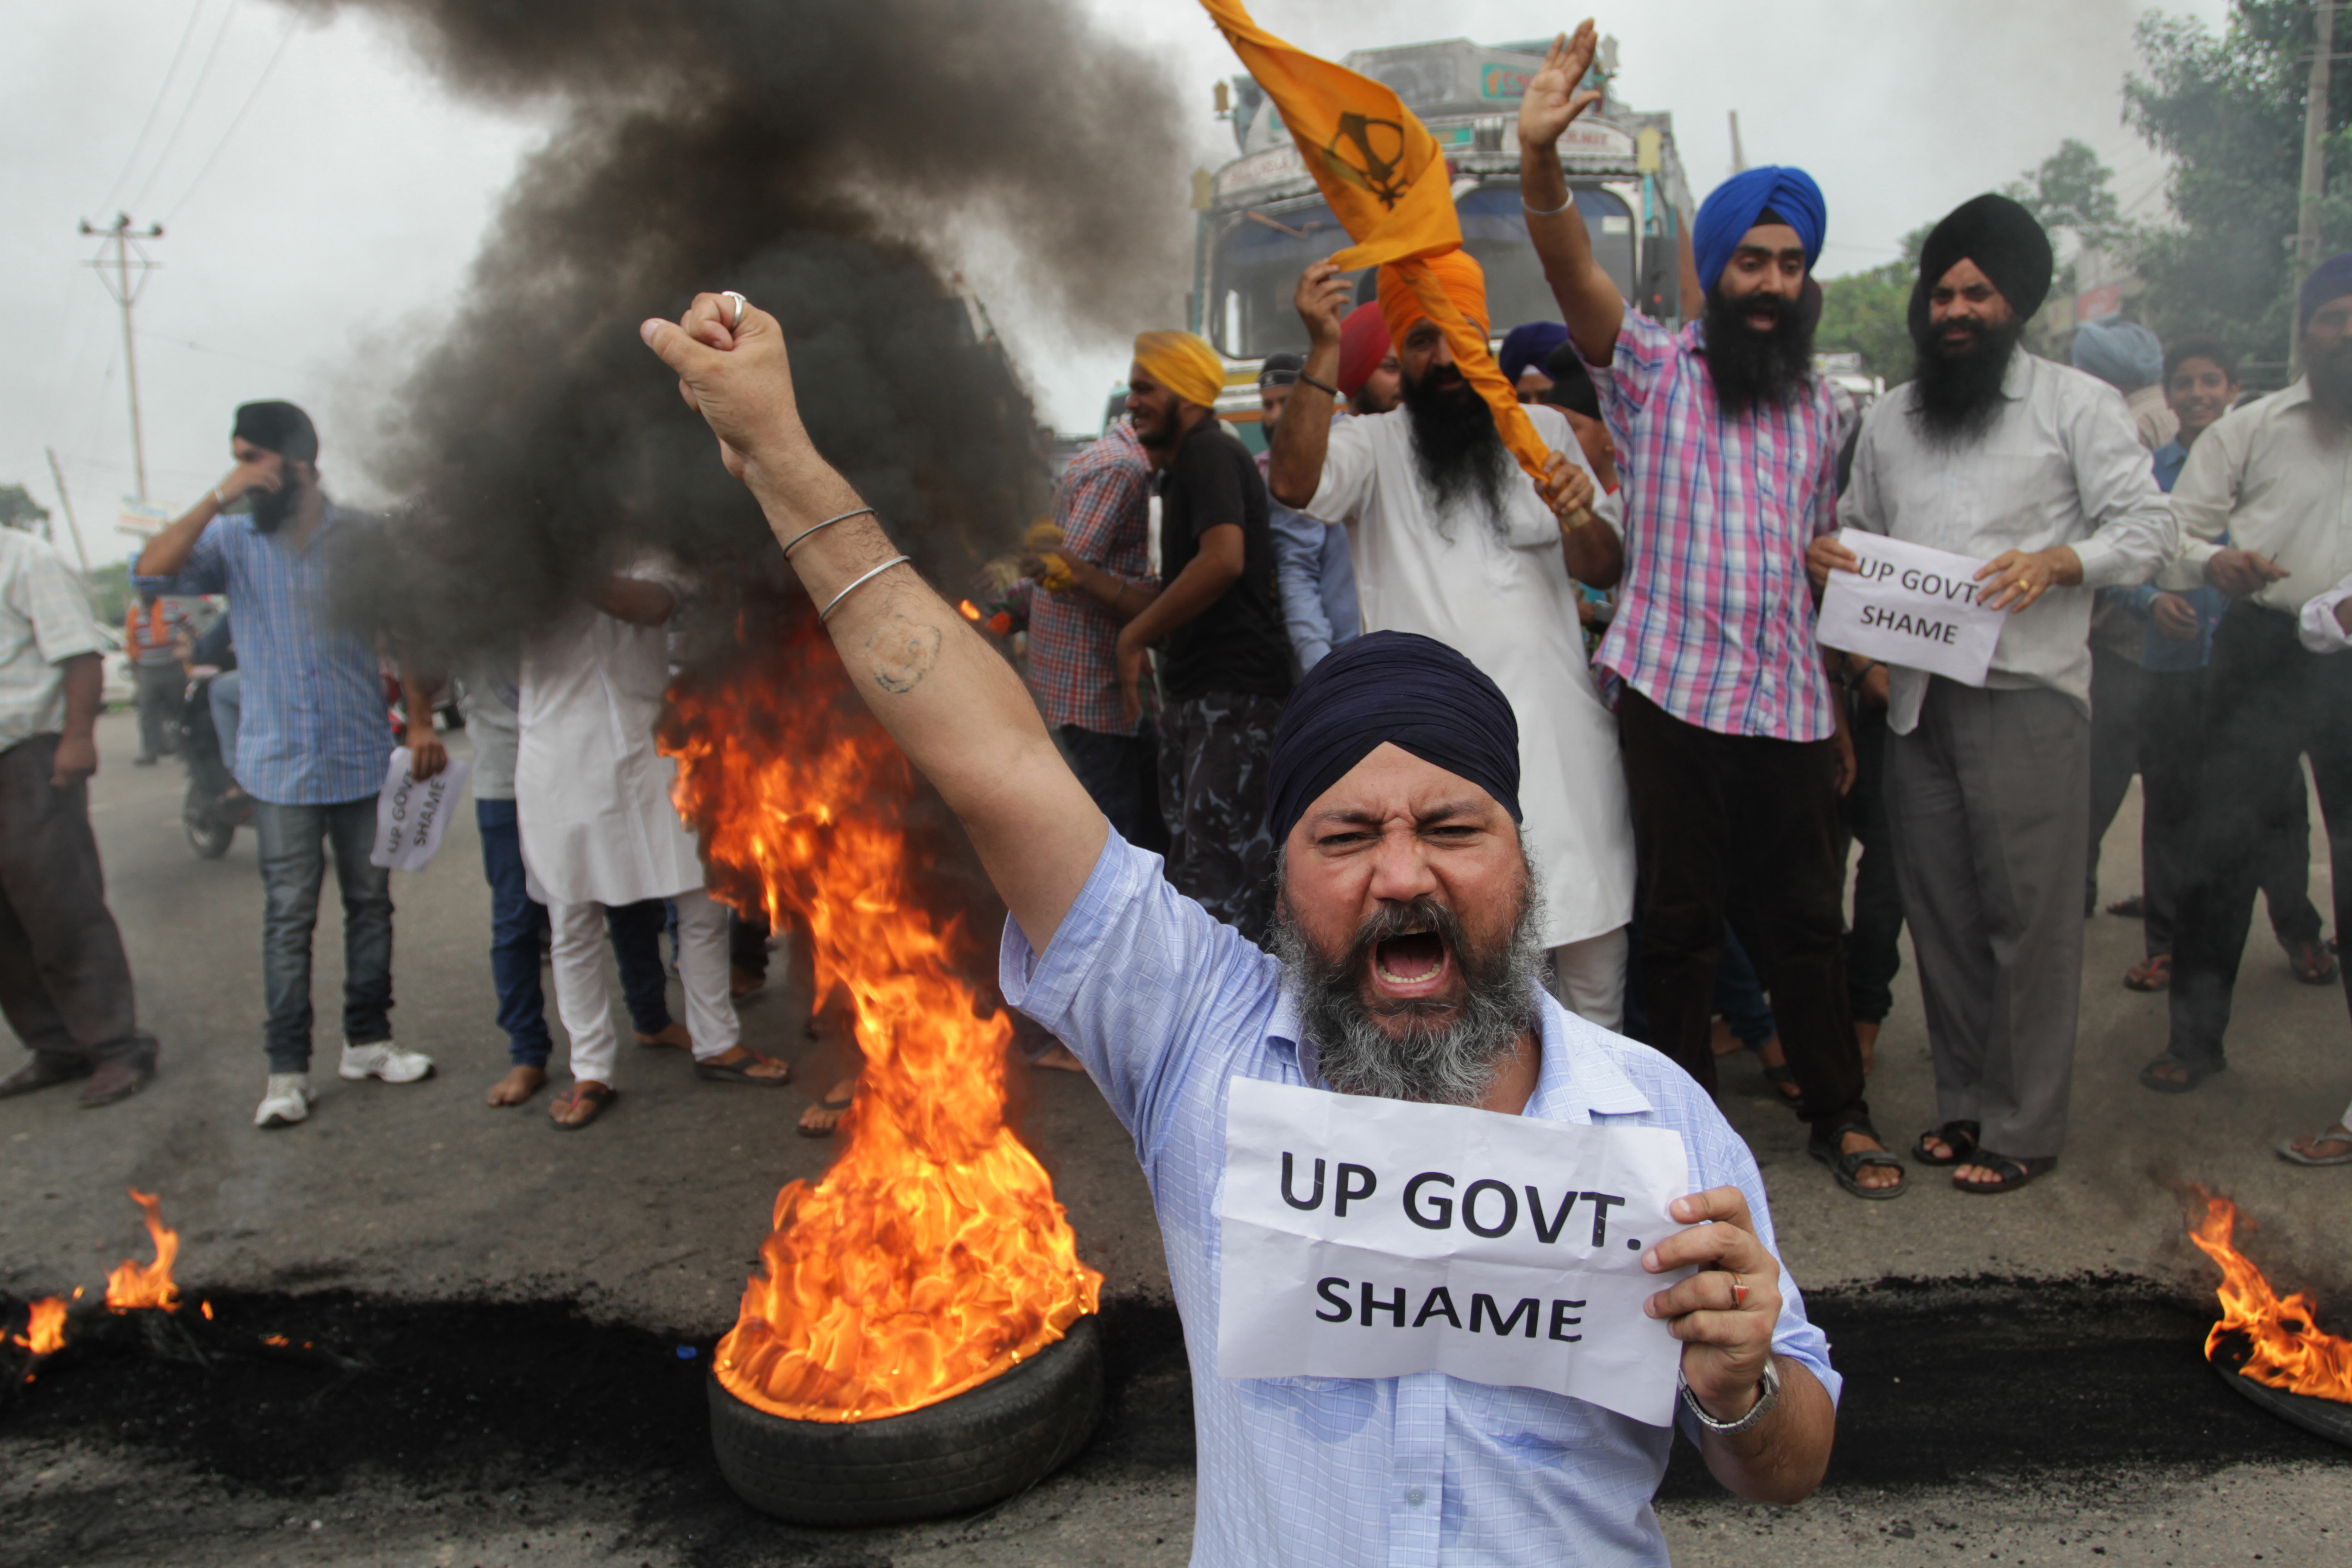 Members of the Sikh community shout slogans as they burn tires during a protest in the Indian state of Uttar Pradesh on July 27, 2014.